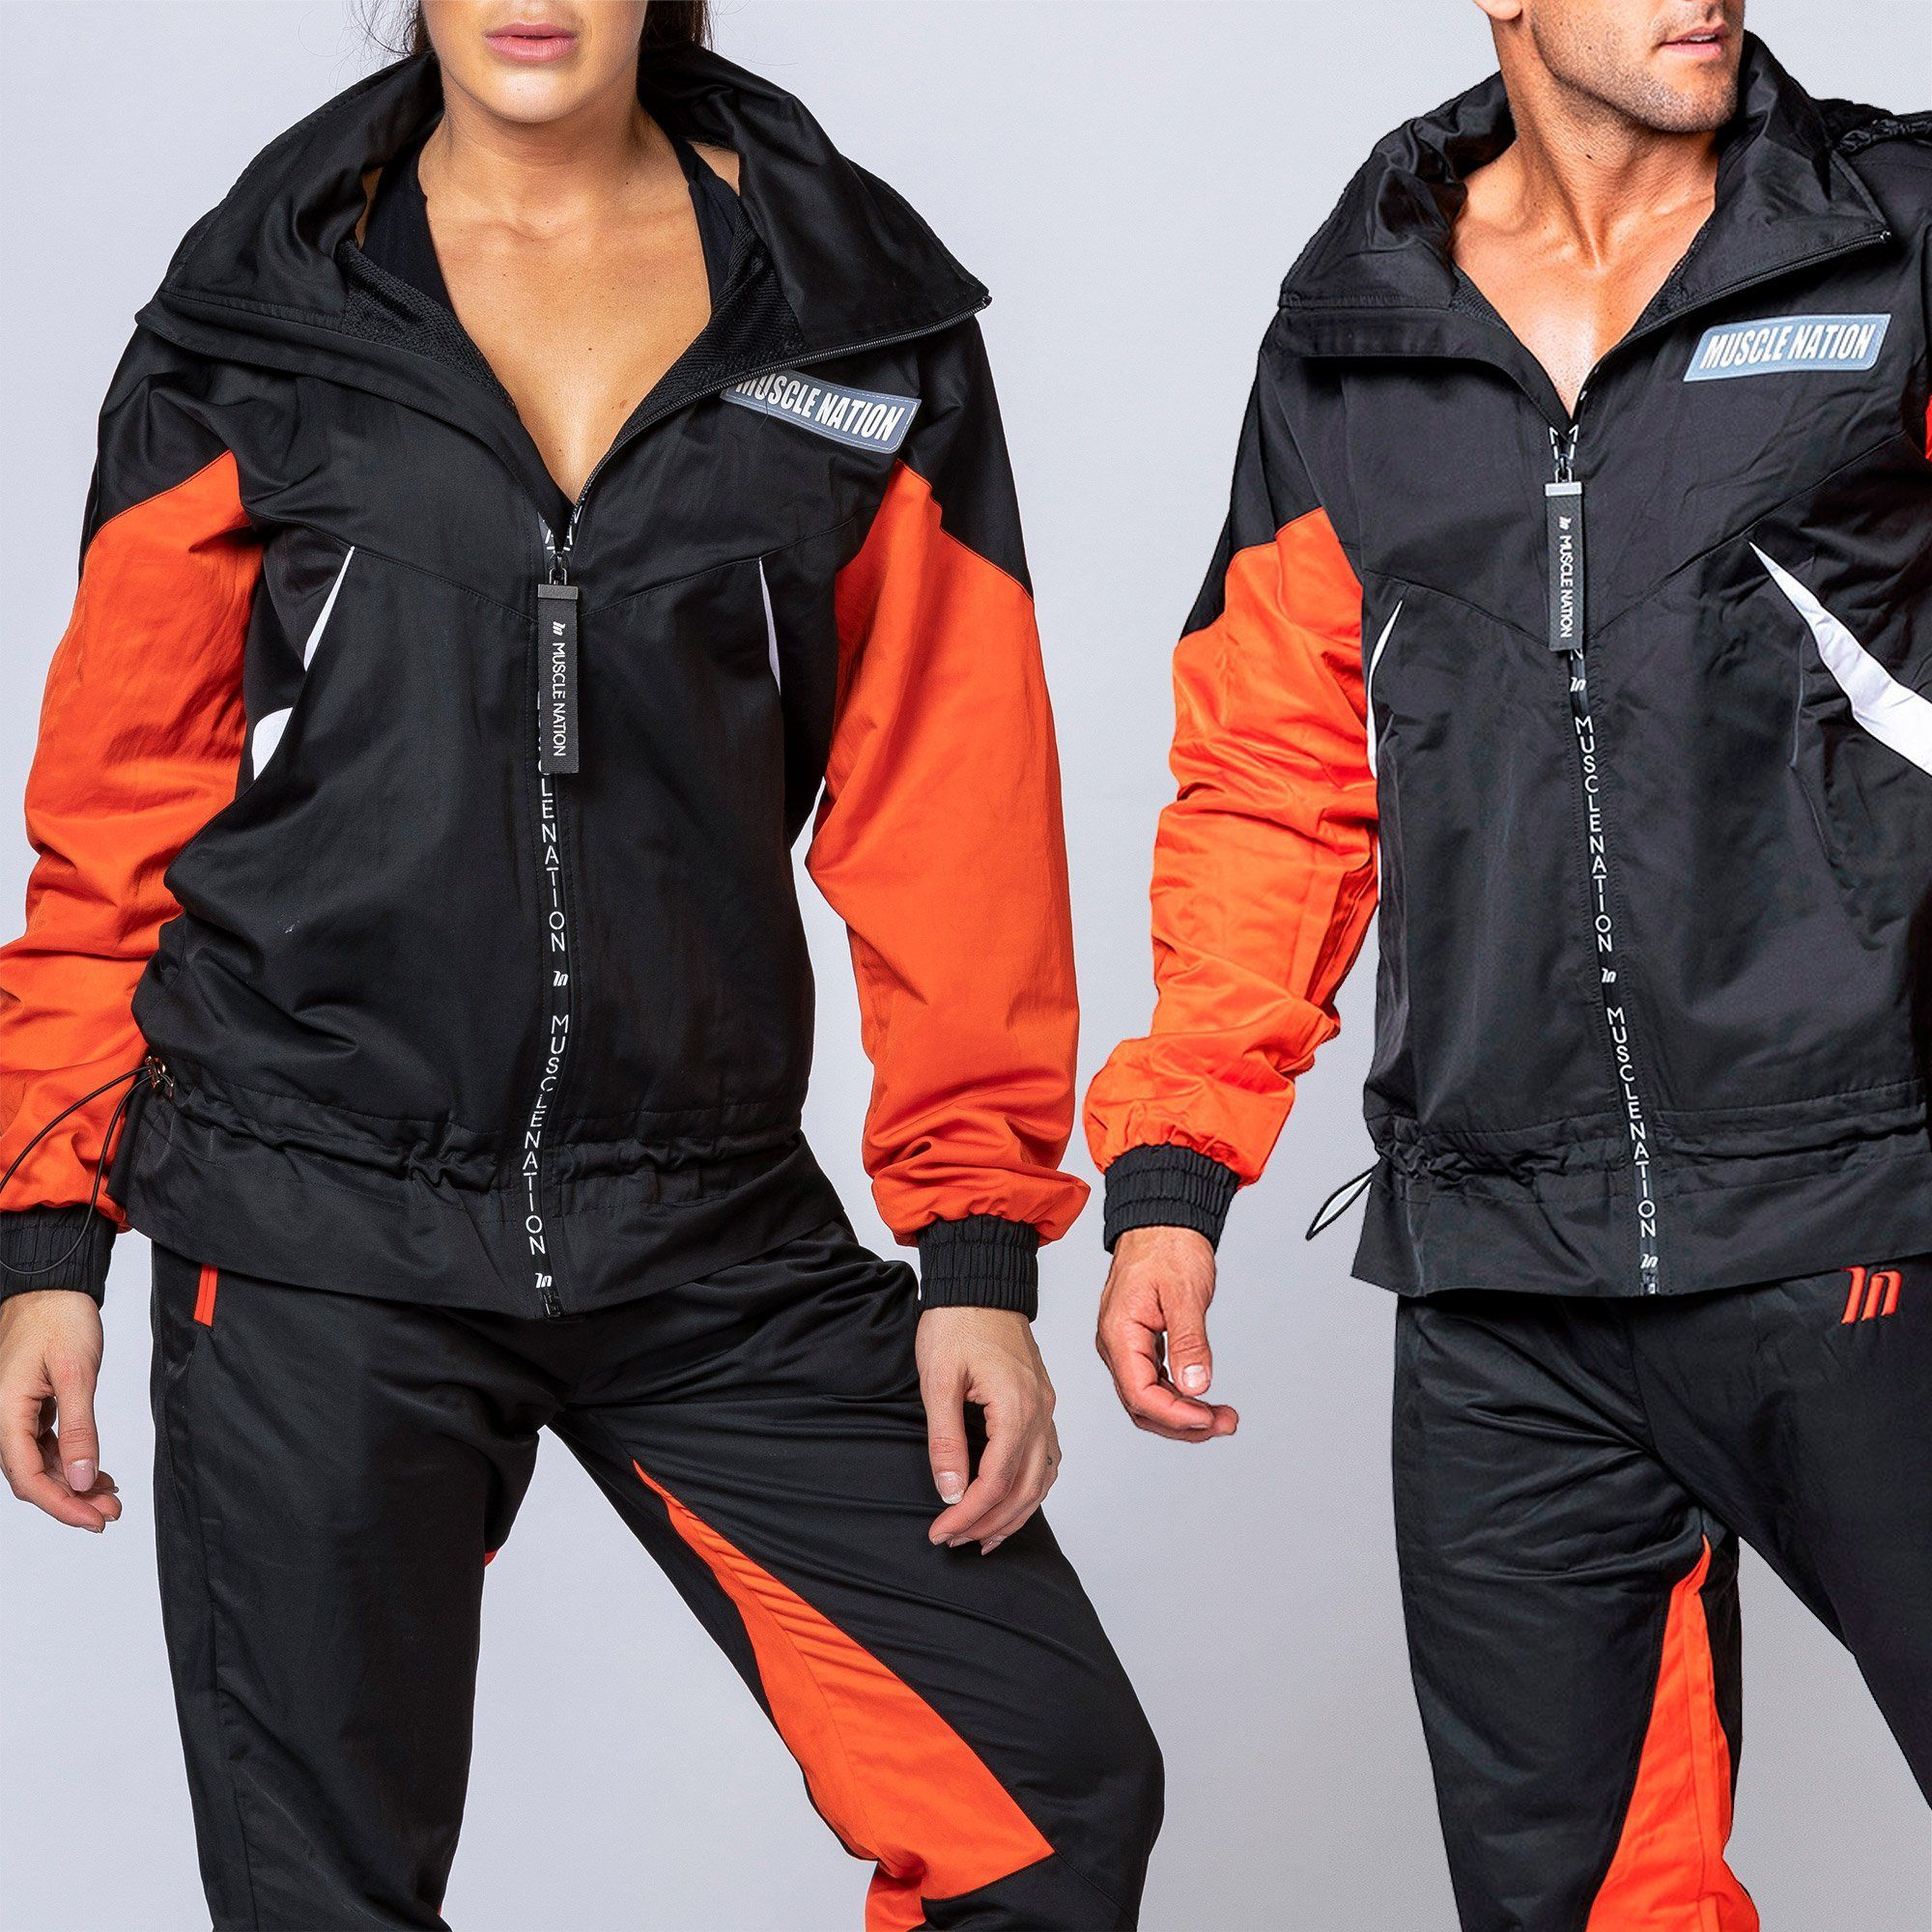 Muscle Nation Unisex Retro Jacket - Black/Blood Orange